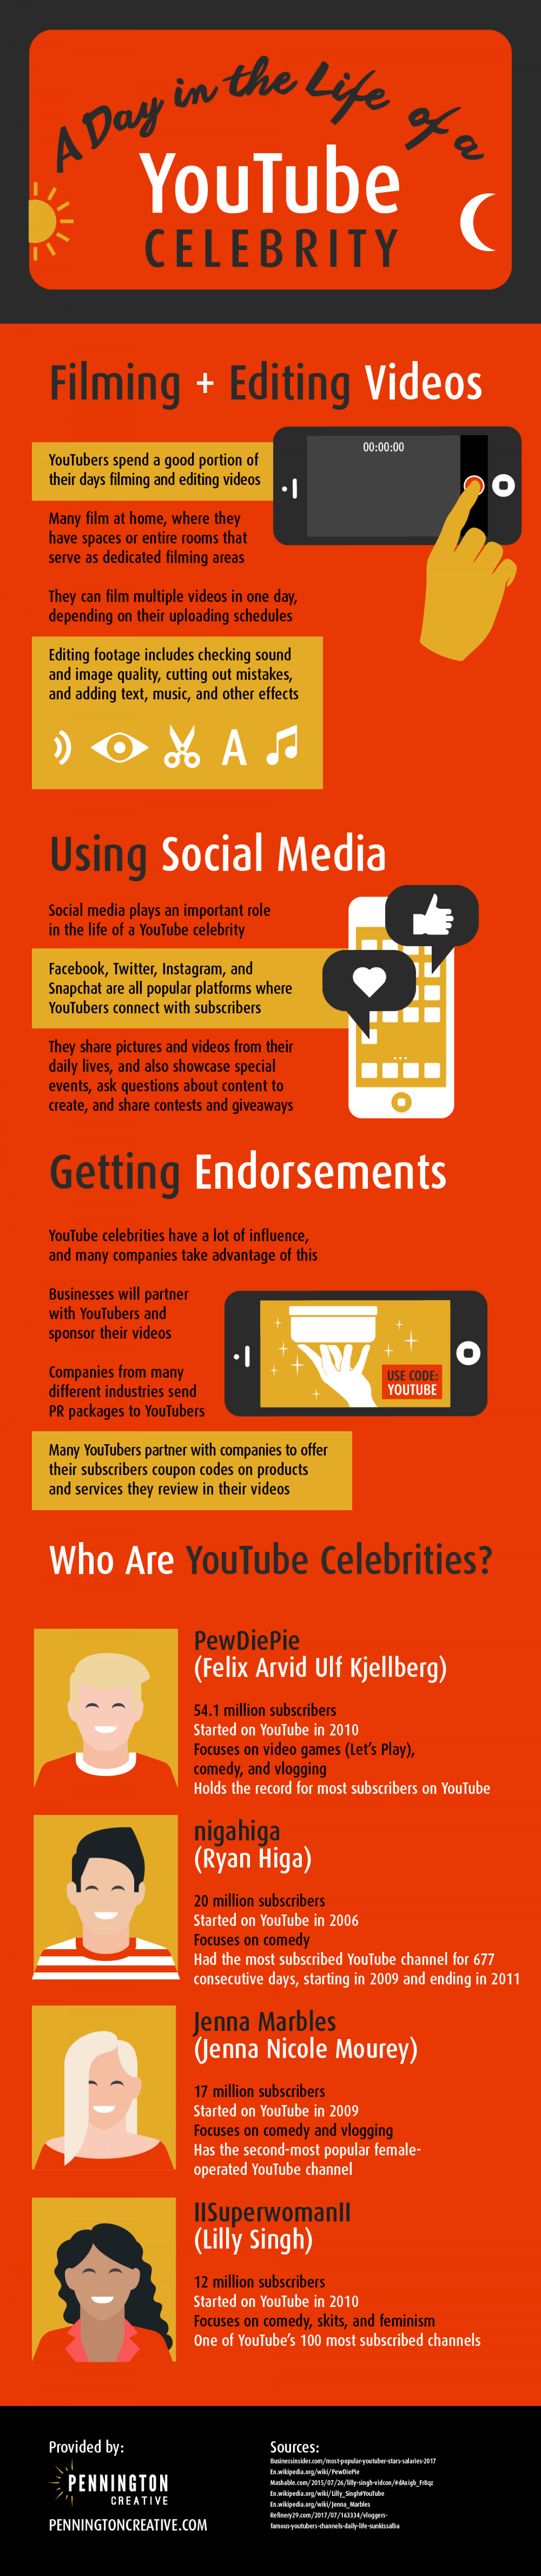 A Day in the Life of a YouTube Celebrity Infographic